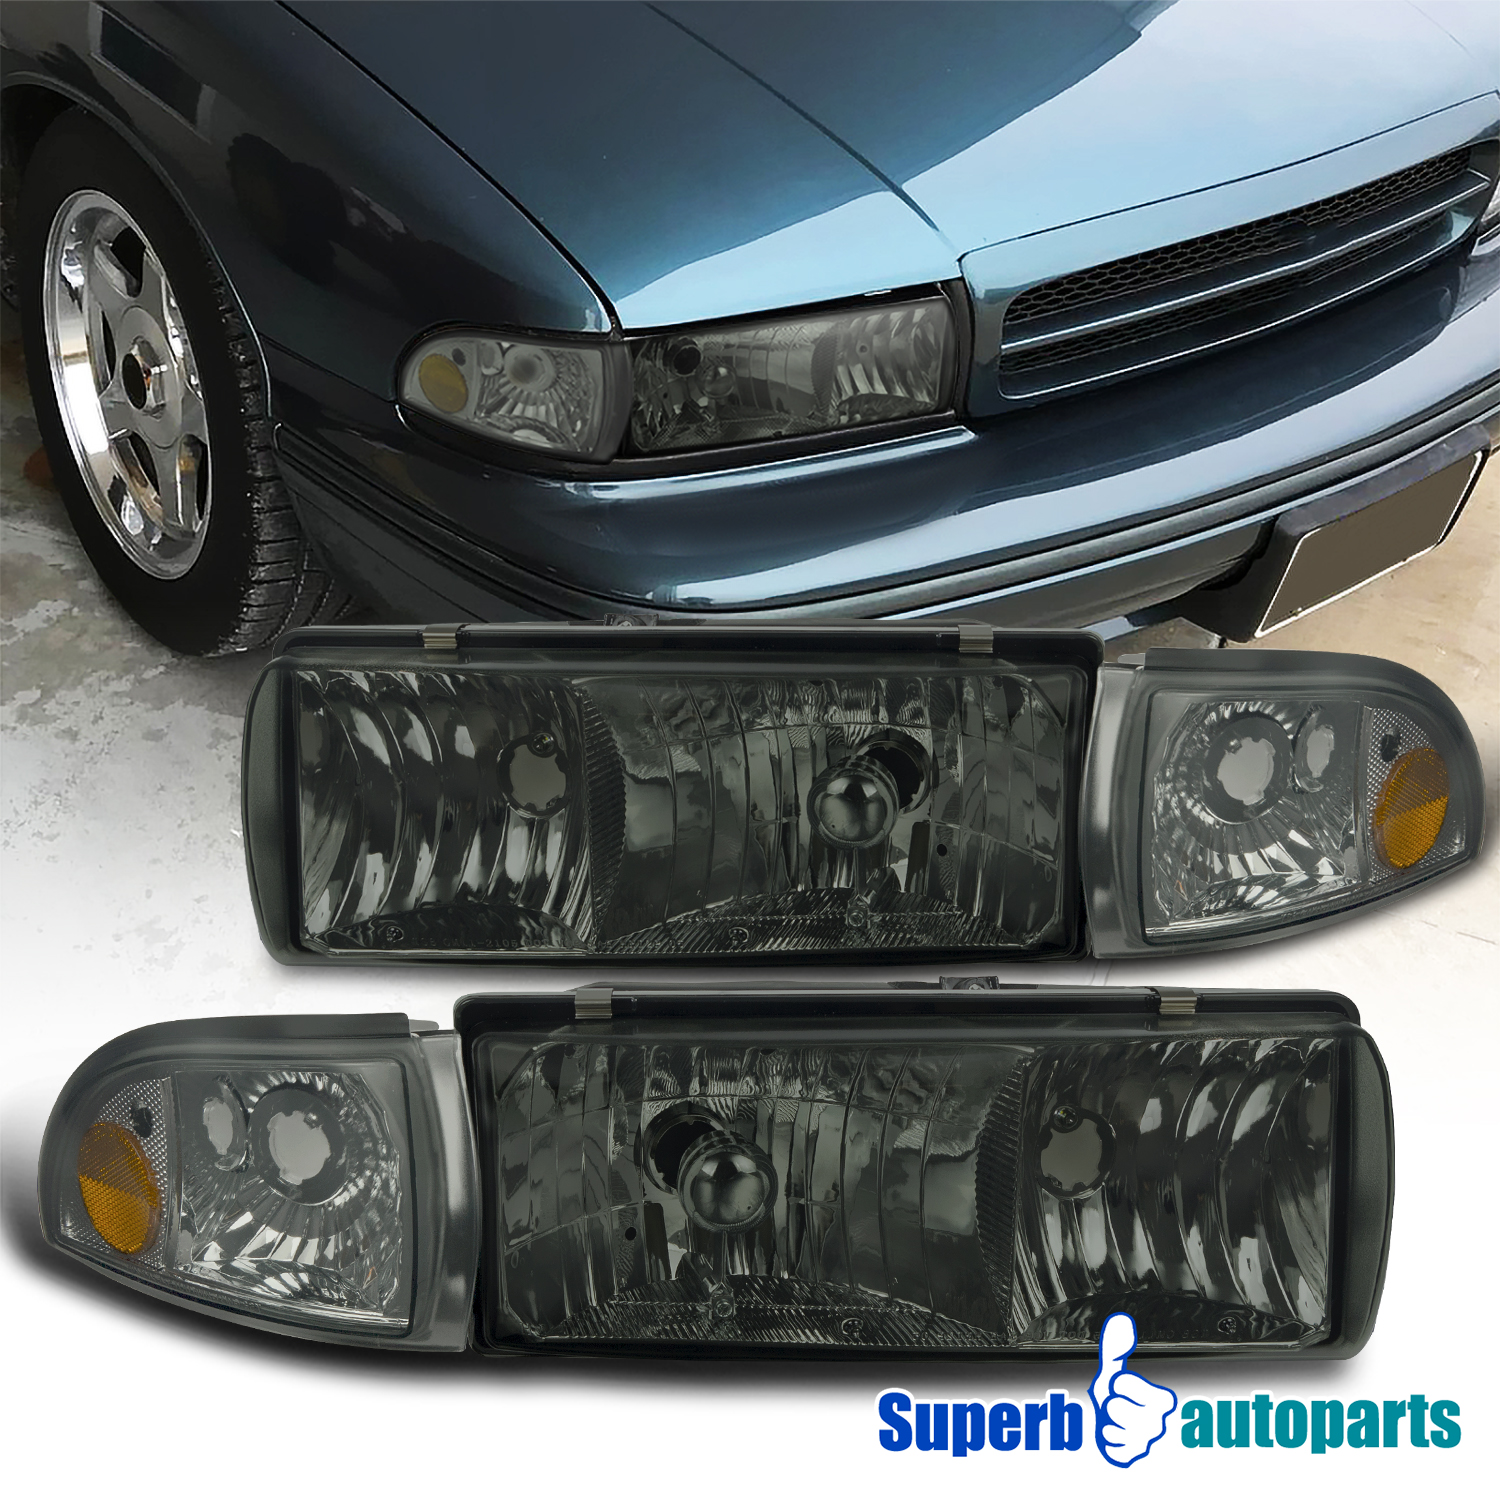 Details about For 1994-1996 Chevy Impala Smoke Headlights Head Lamp w/  Corner Lights